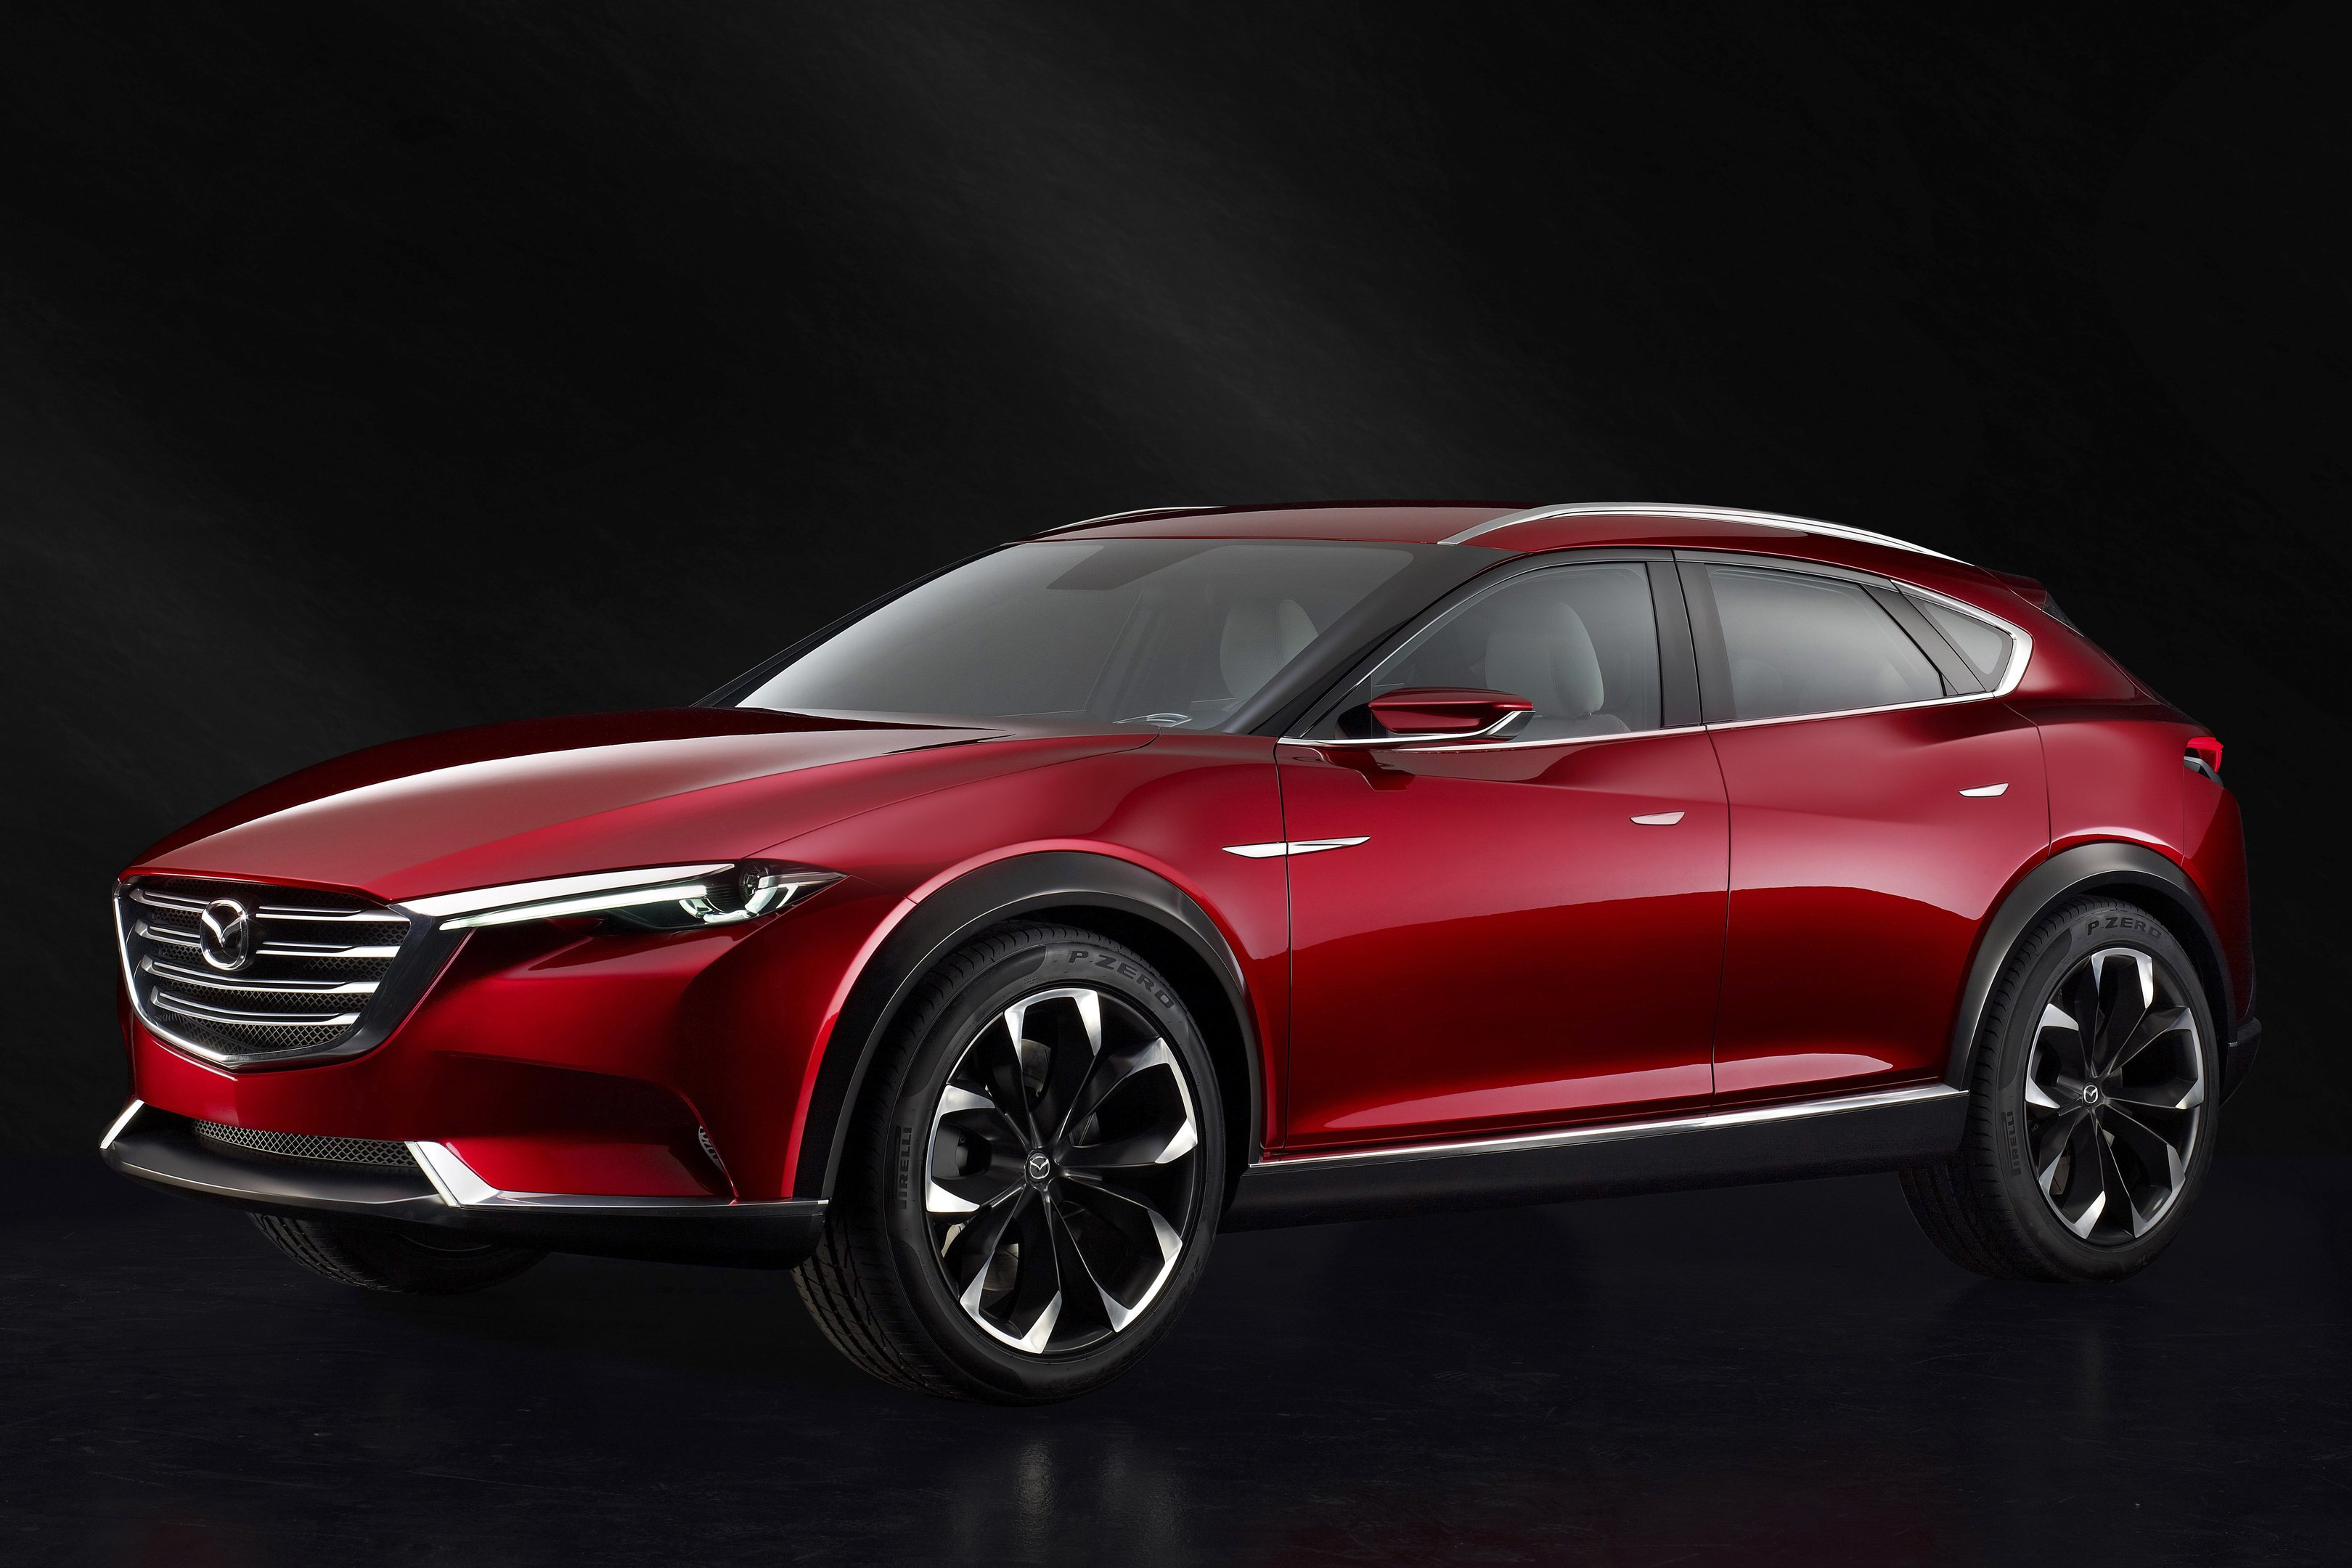 The new Mazda Koeru concept is unveiled to the world